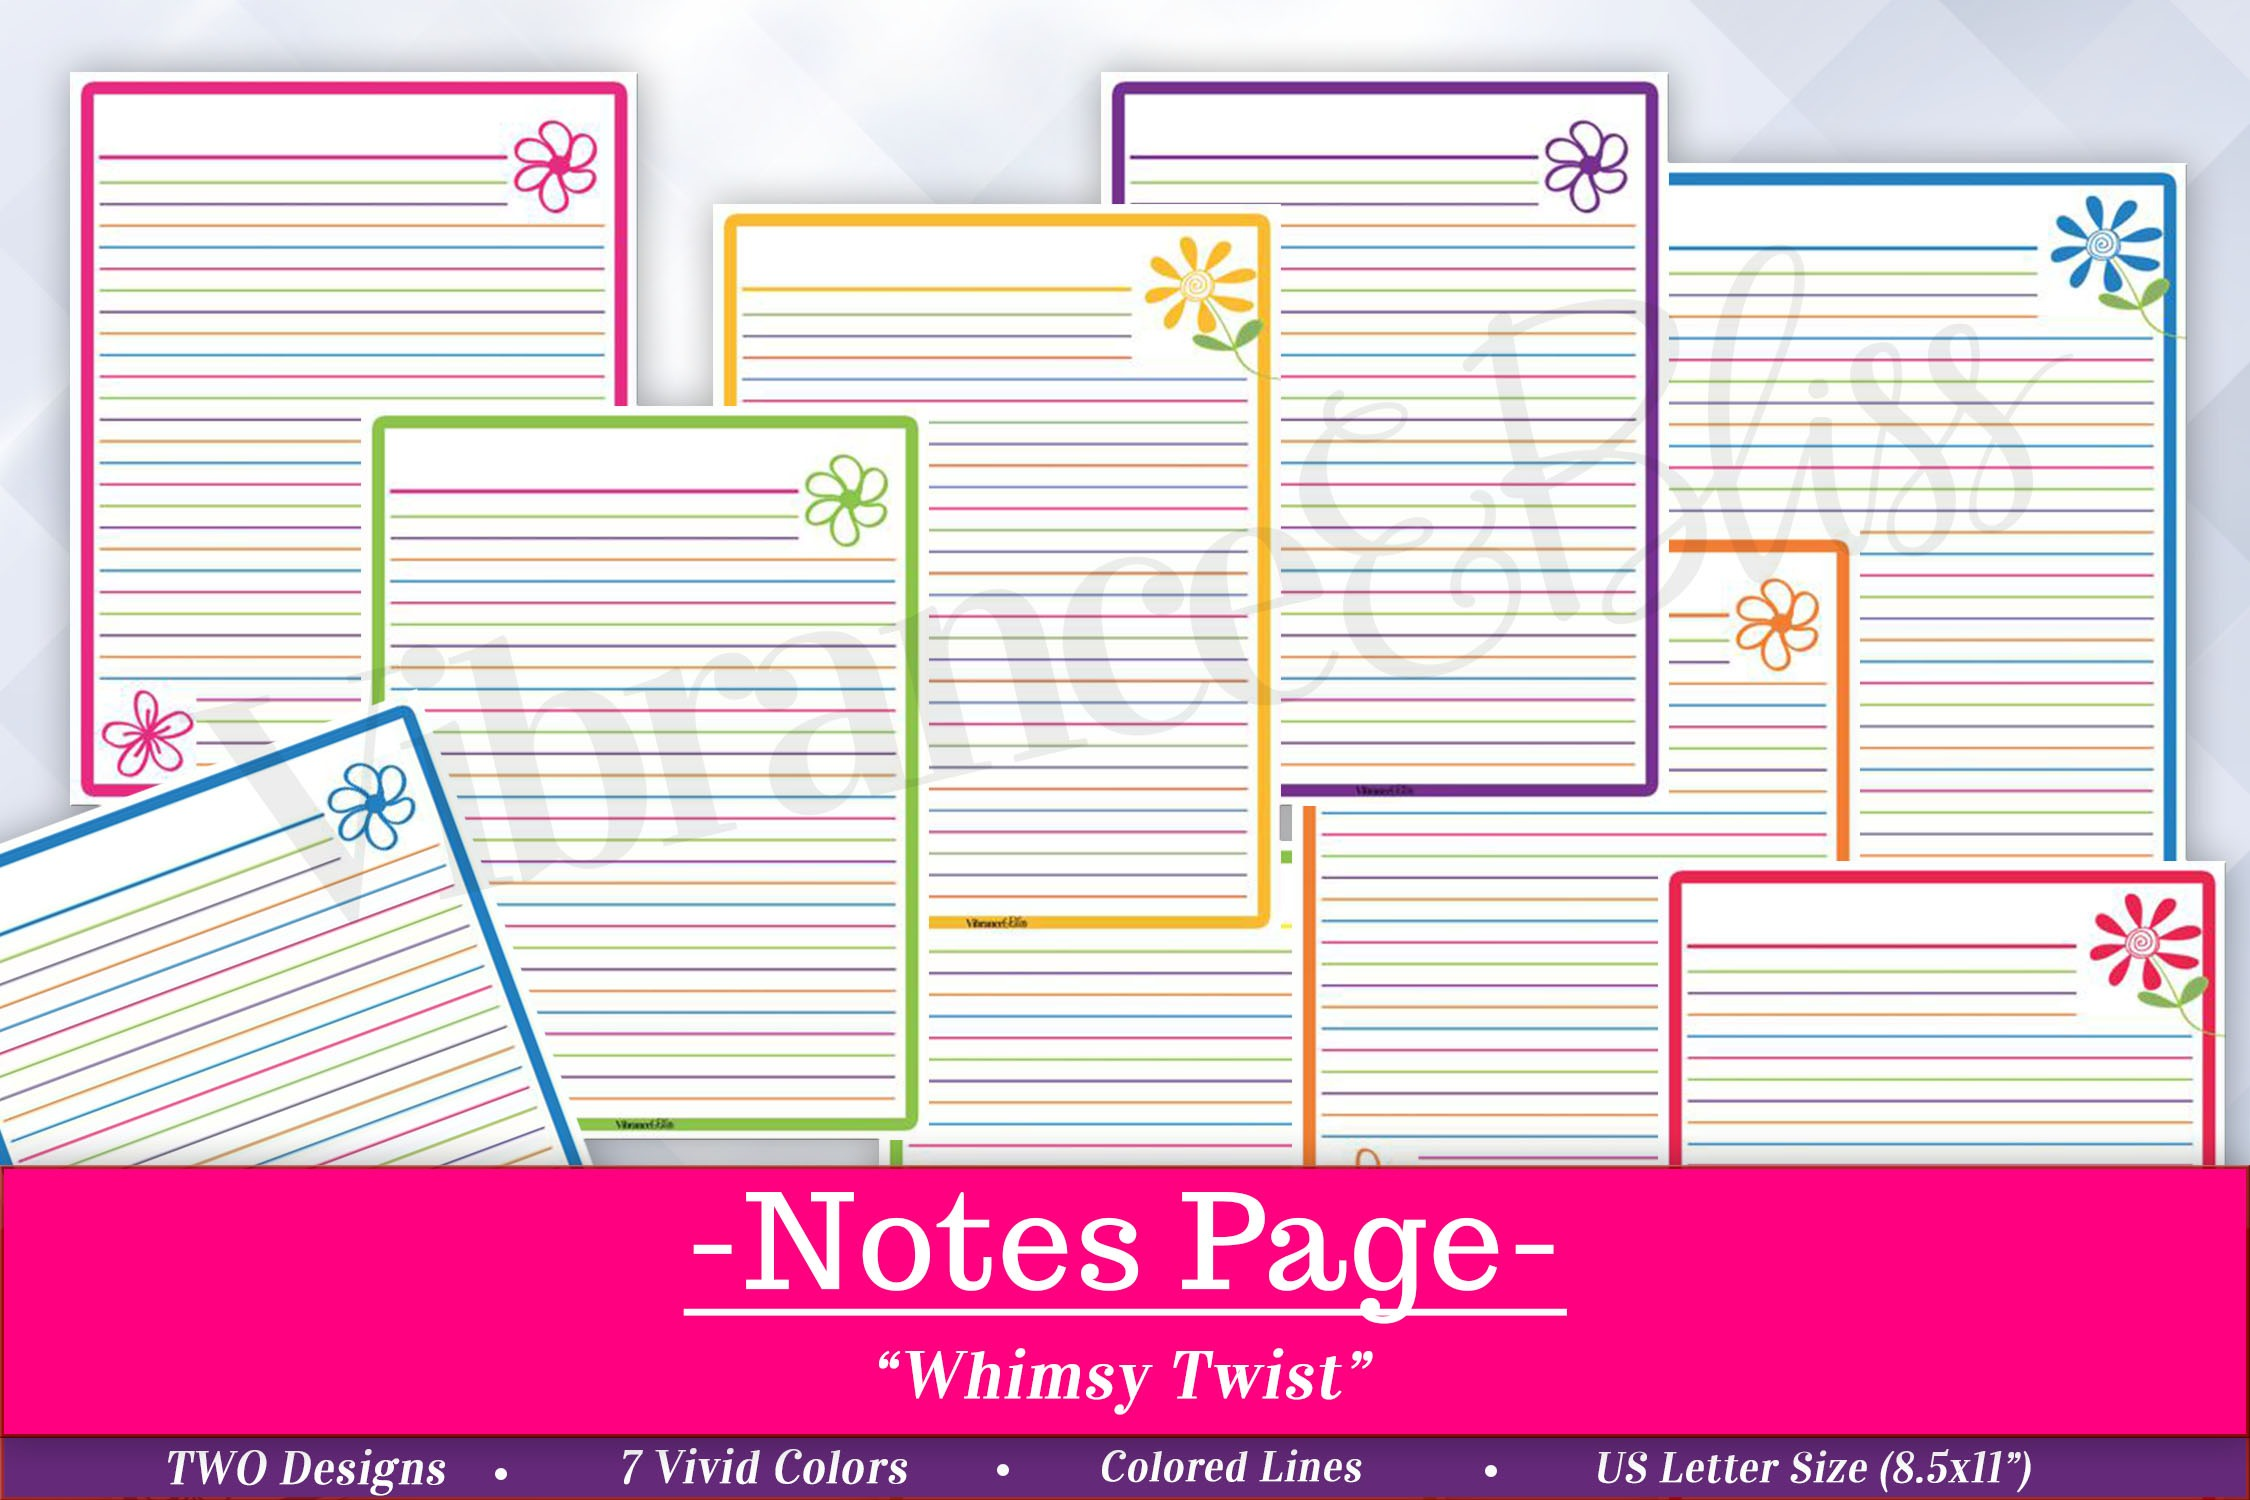 Notes (Whimsy Twist)